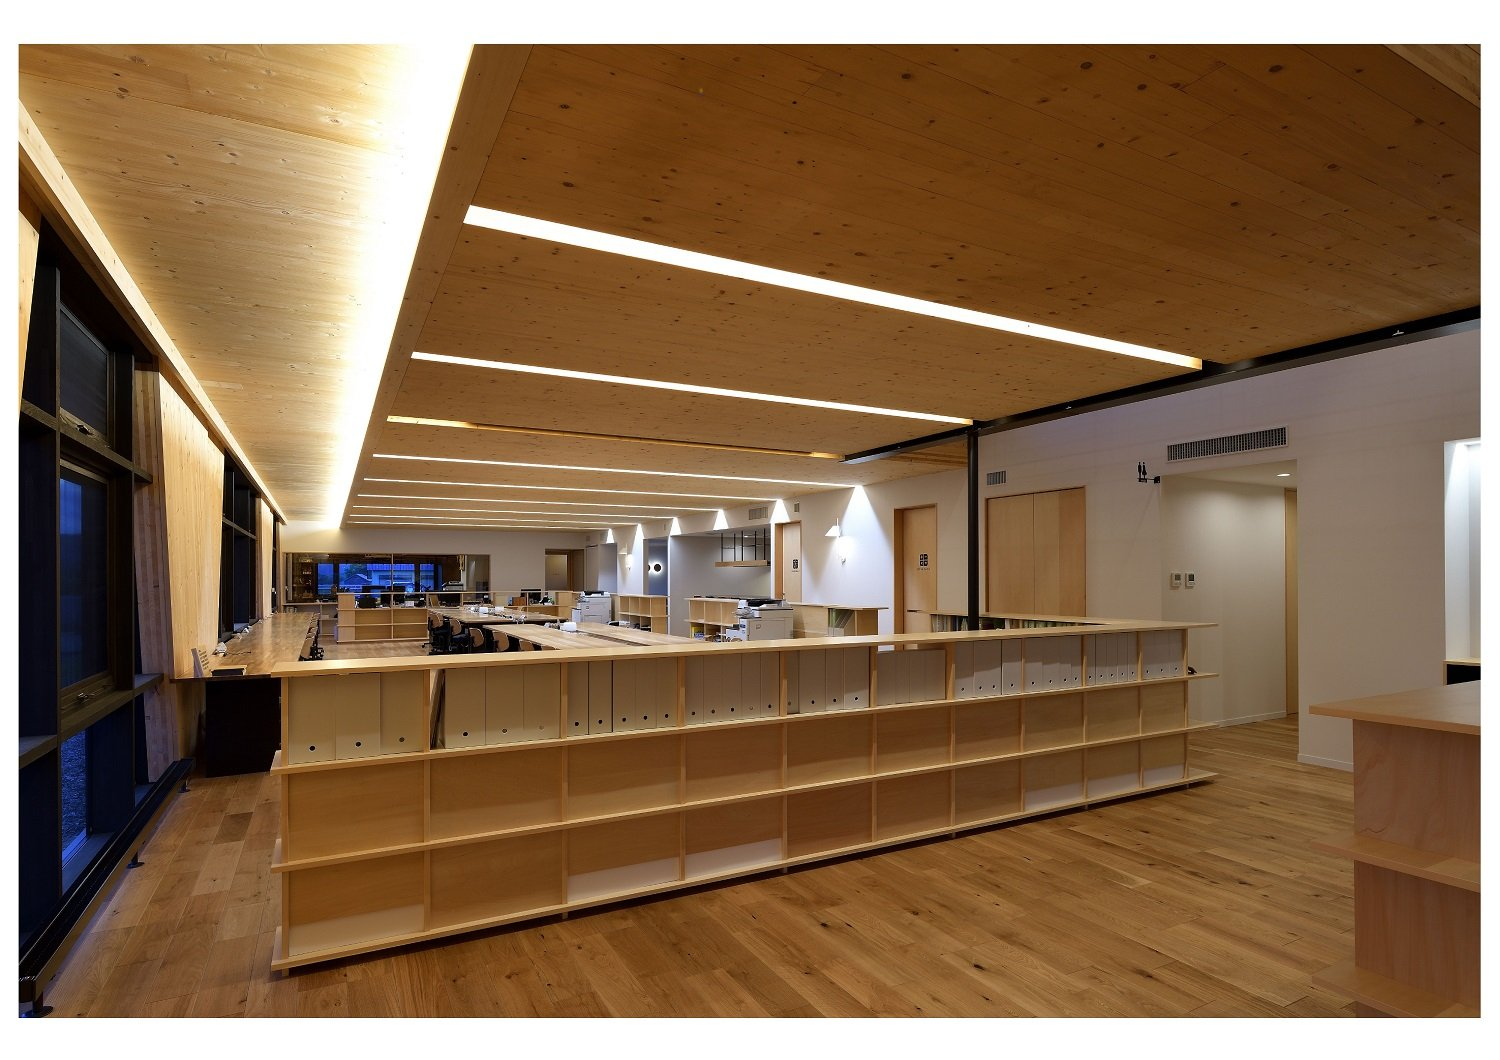 Taking into account that the company's main business is civil engineering, our design focuses on creating an office space where many employees can gather and interact with each other at the end of the day. Ken Goshima